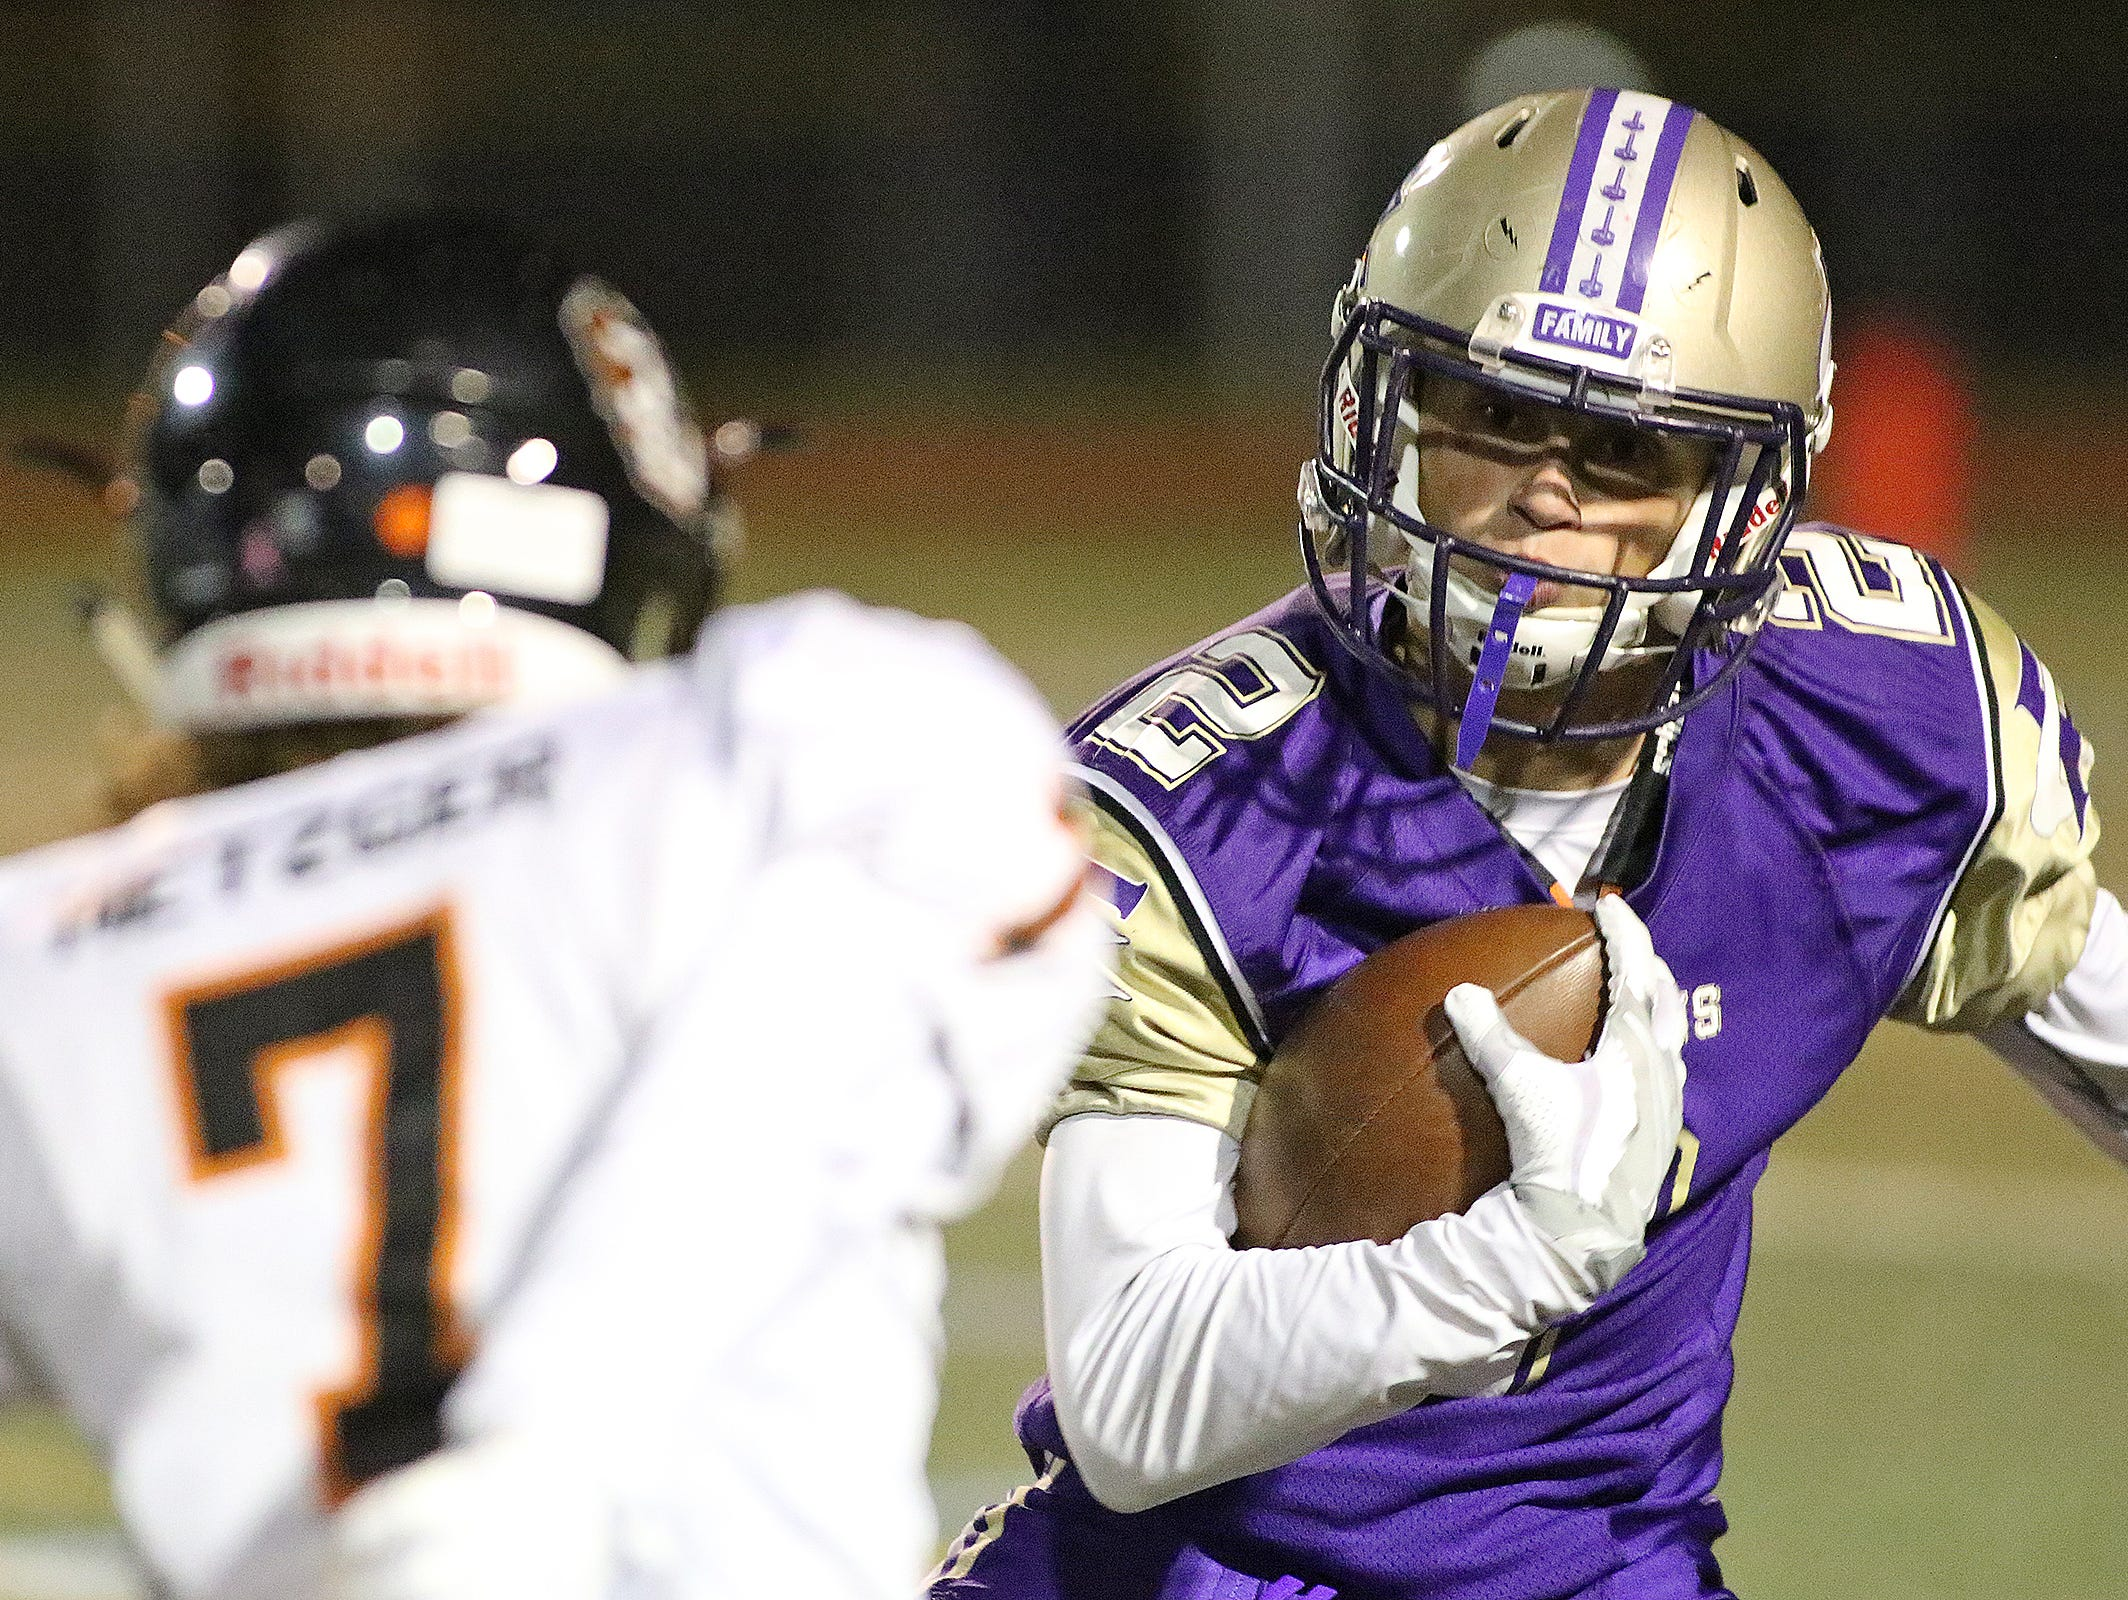 Lambkins punt returner Michael Kadlick jukes a defender during the Fort Collins Lambkins' 49-26 win over the Greeley Central Wildcats on Friday, Oct. 7, 2016 in Fort Collins, Colo. (Photo by Brian Smith/for the Coloradoan)